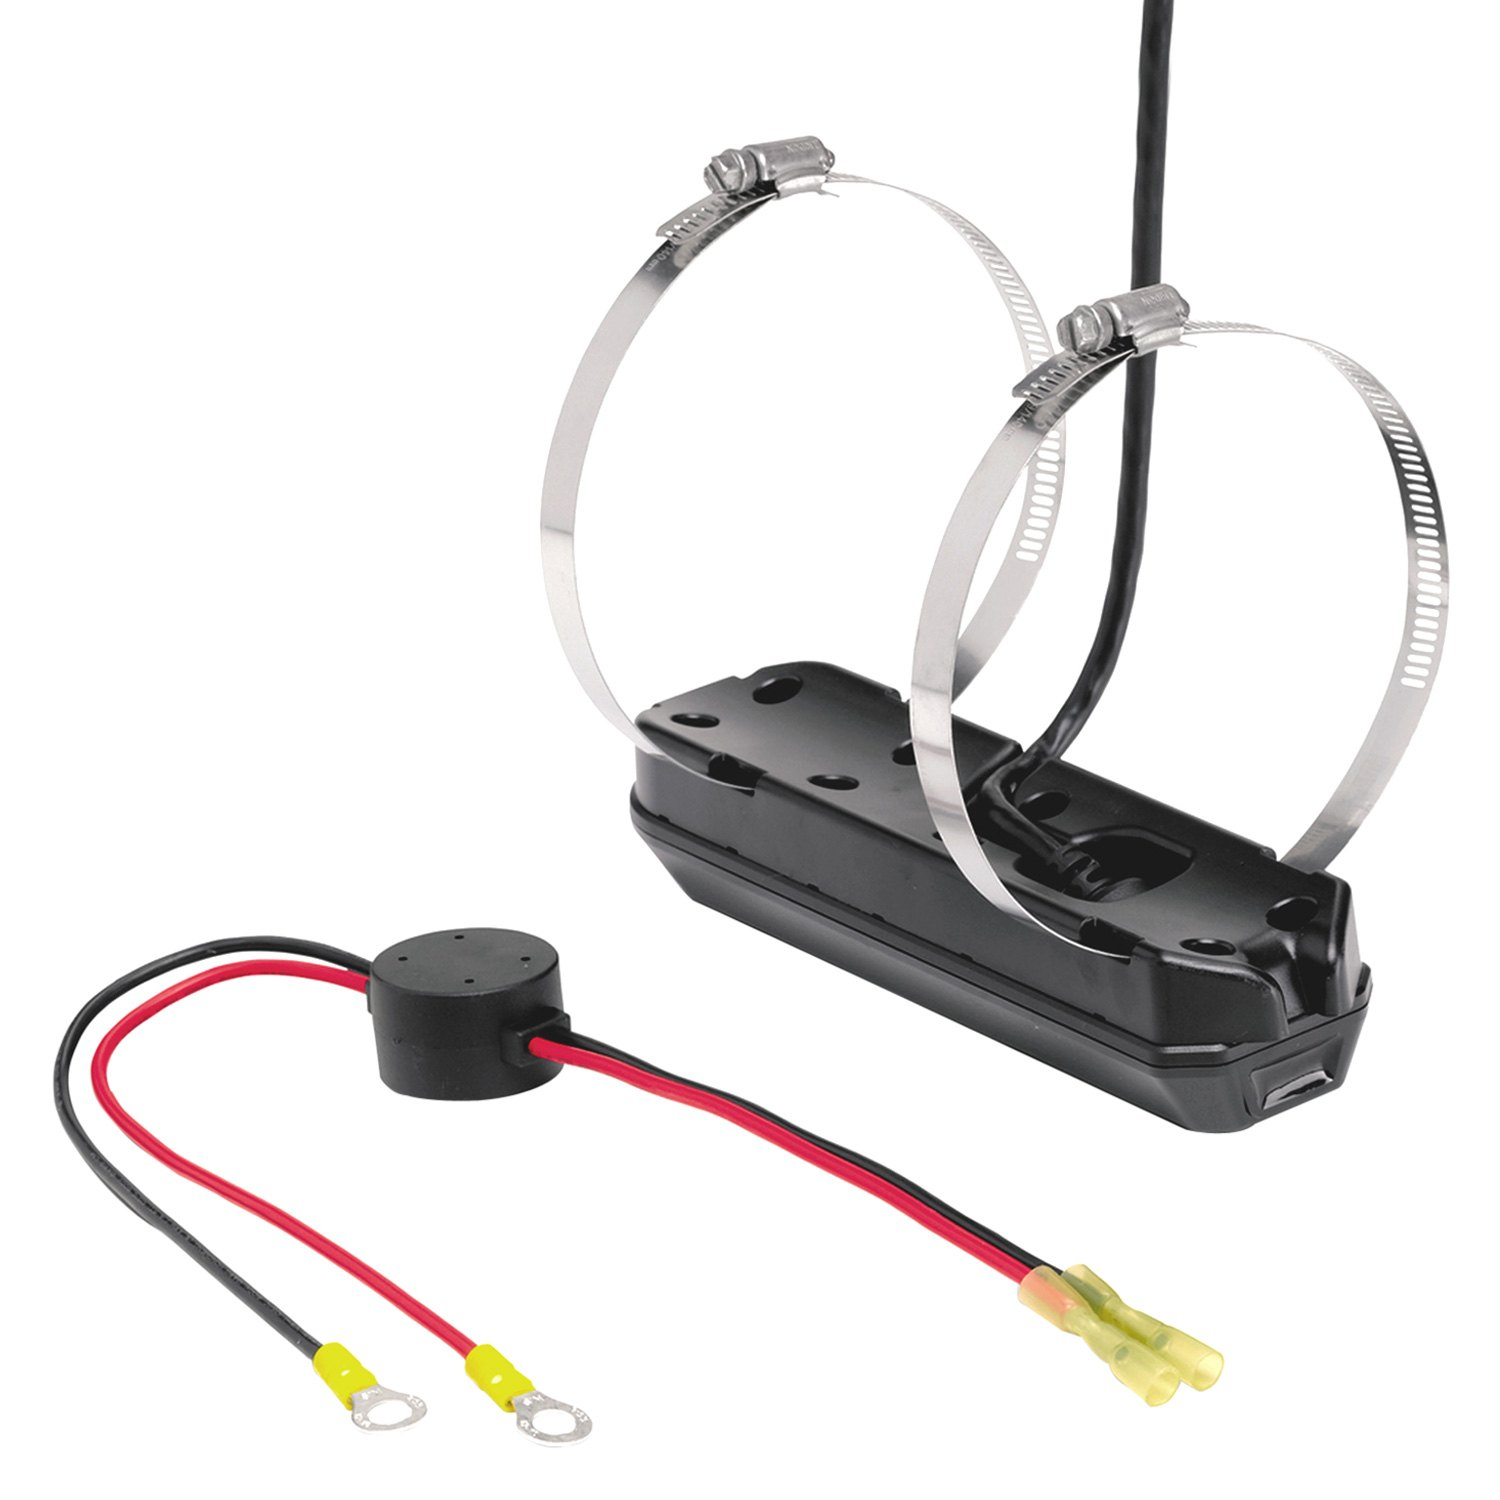 Humminbird® 710291-1 - MEGA Down Imaging+ XTM 14 HW MDI T Plastic Trolling  Motor Mount Transducer for Solix